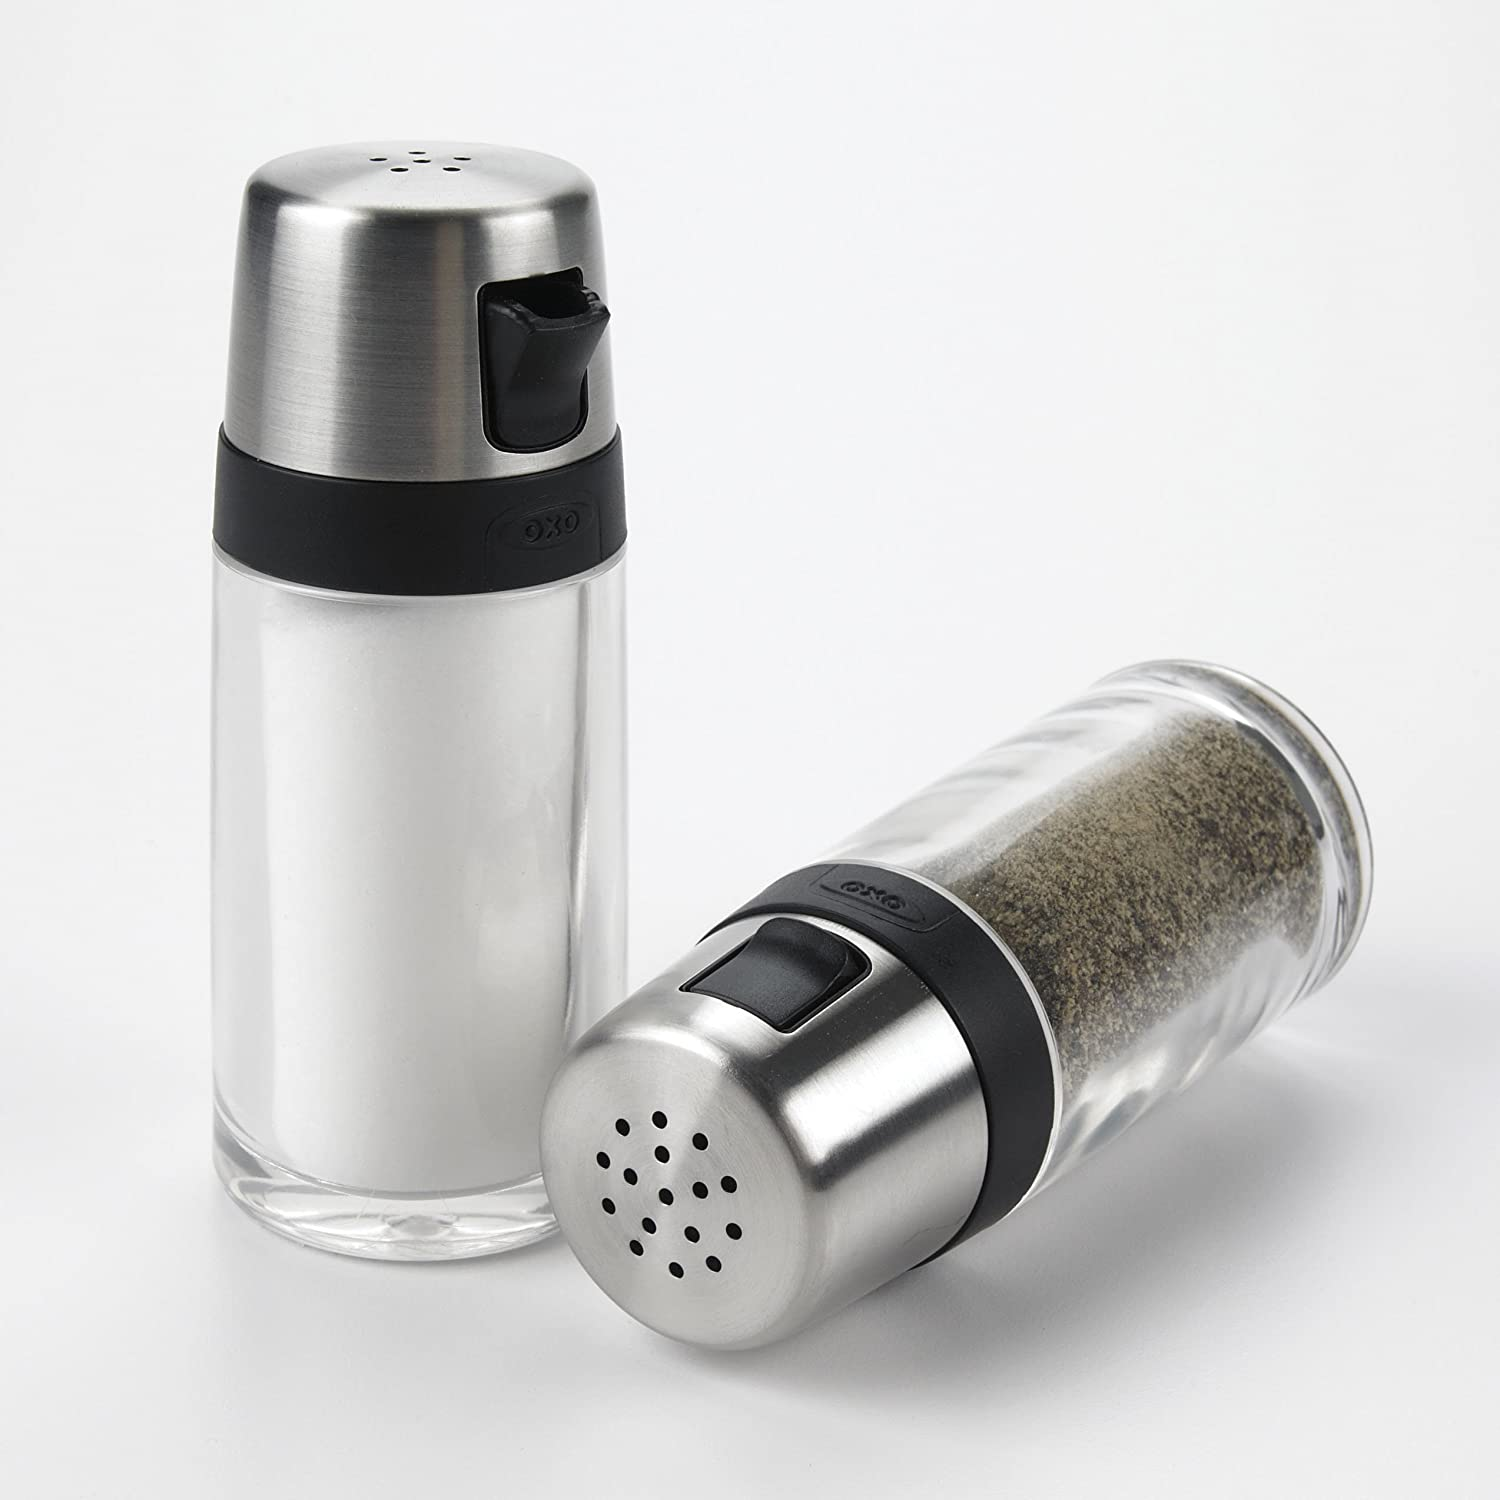 Amazon OXO Good Grips Salt and Pepper Shaker Set with Pour